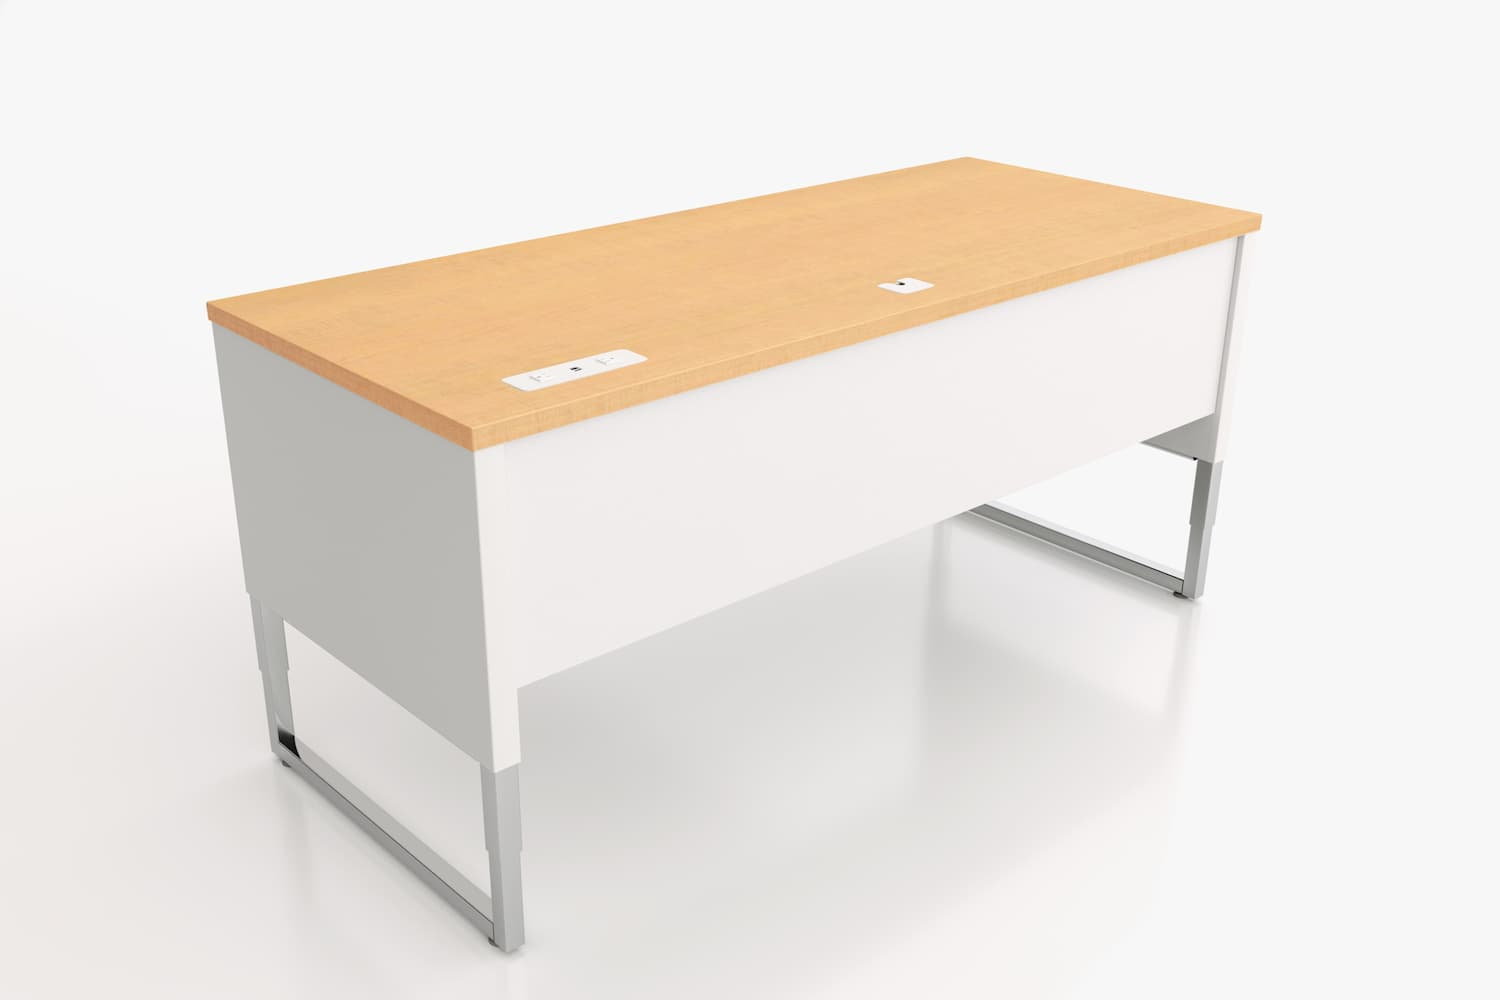 Advent-Desk-ADV-7230-WH-Custom-Top-6-Back